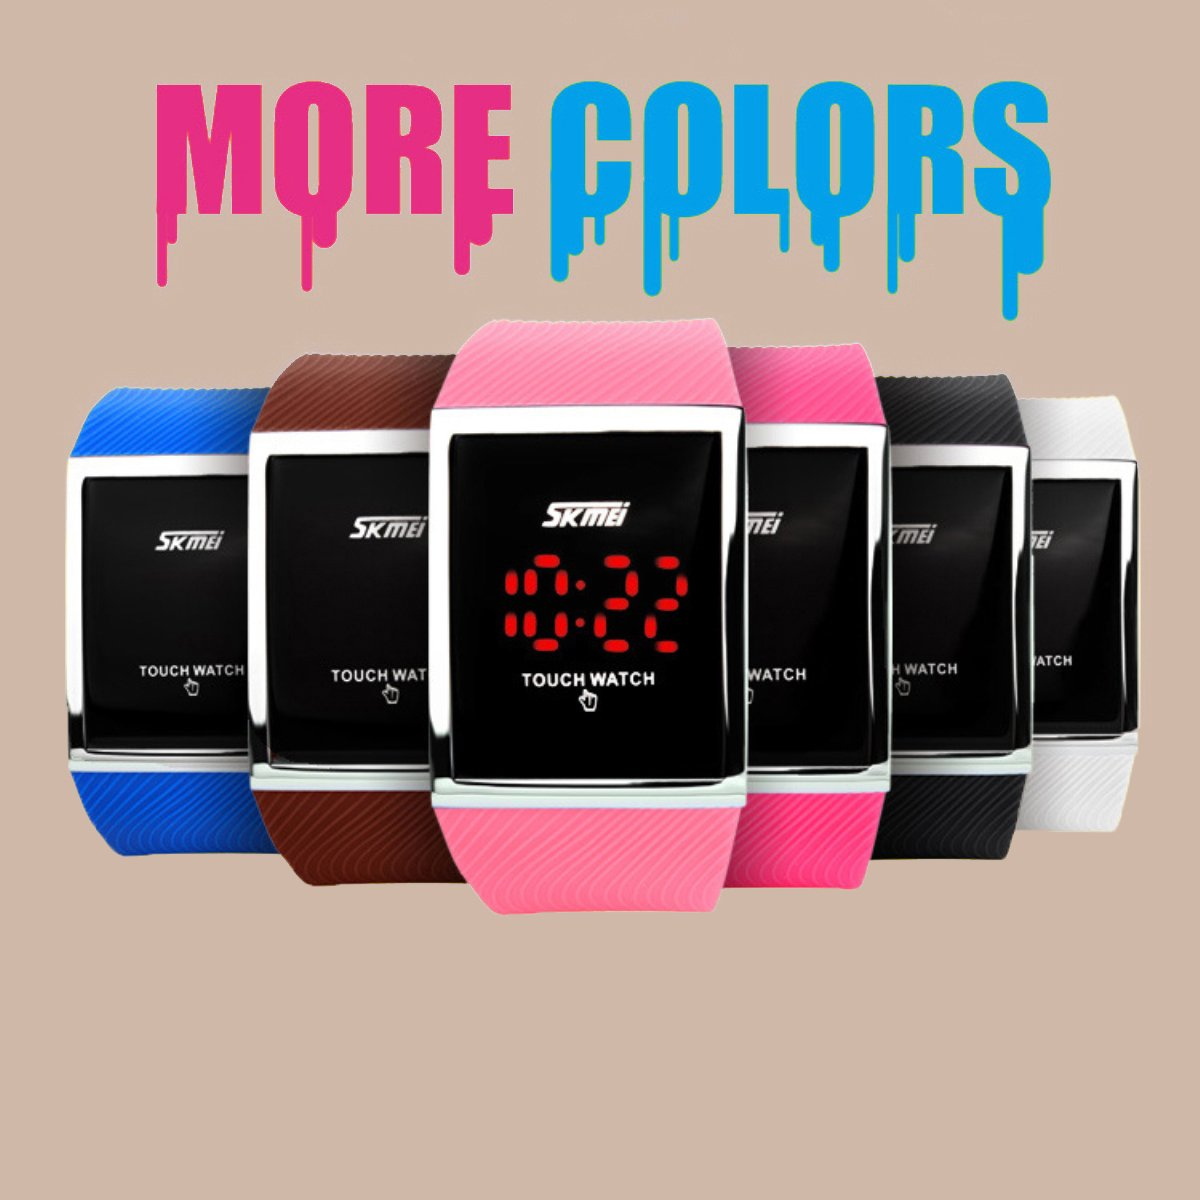 Touch Screen Outdoor Sports Black Watch with LED, Digital for Boys Girls, Above 10 Years Old Kids by FIZILI (Image #4)